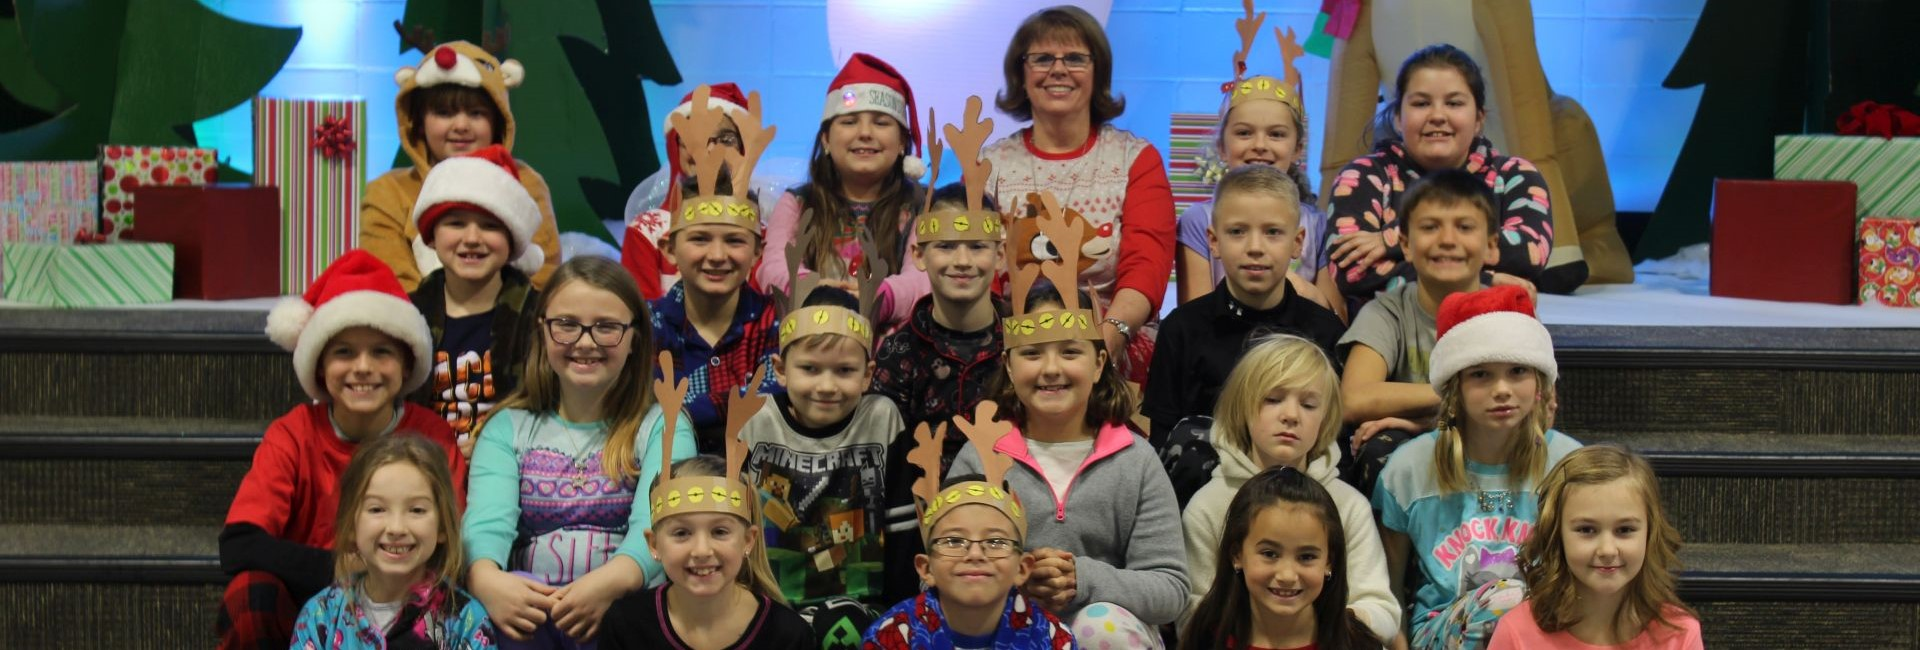 Mrs. Inman's class photo during Rudolph the Red Nosed Reindeer Week